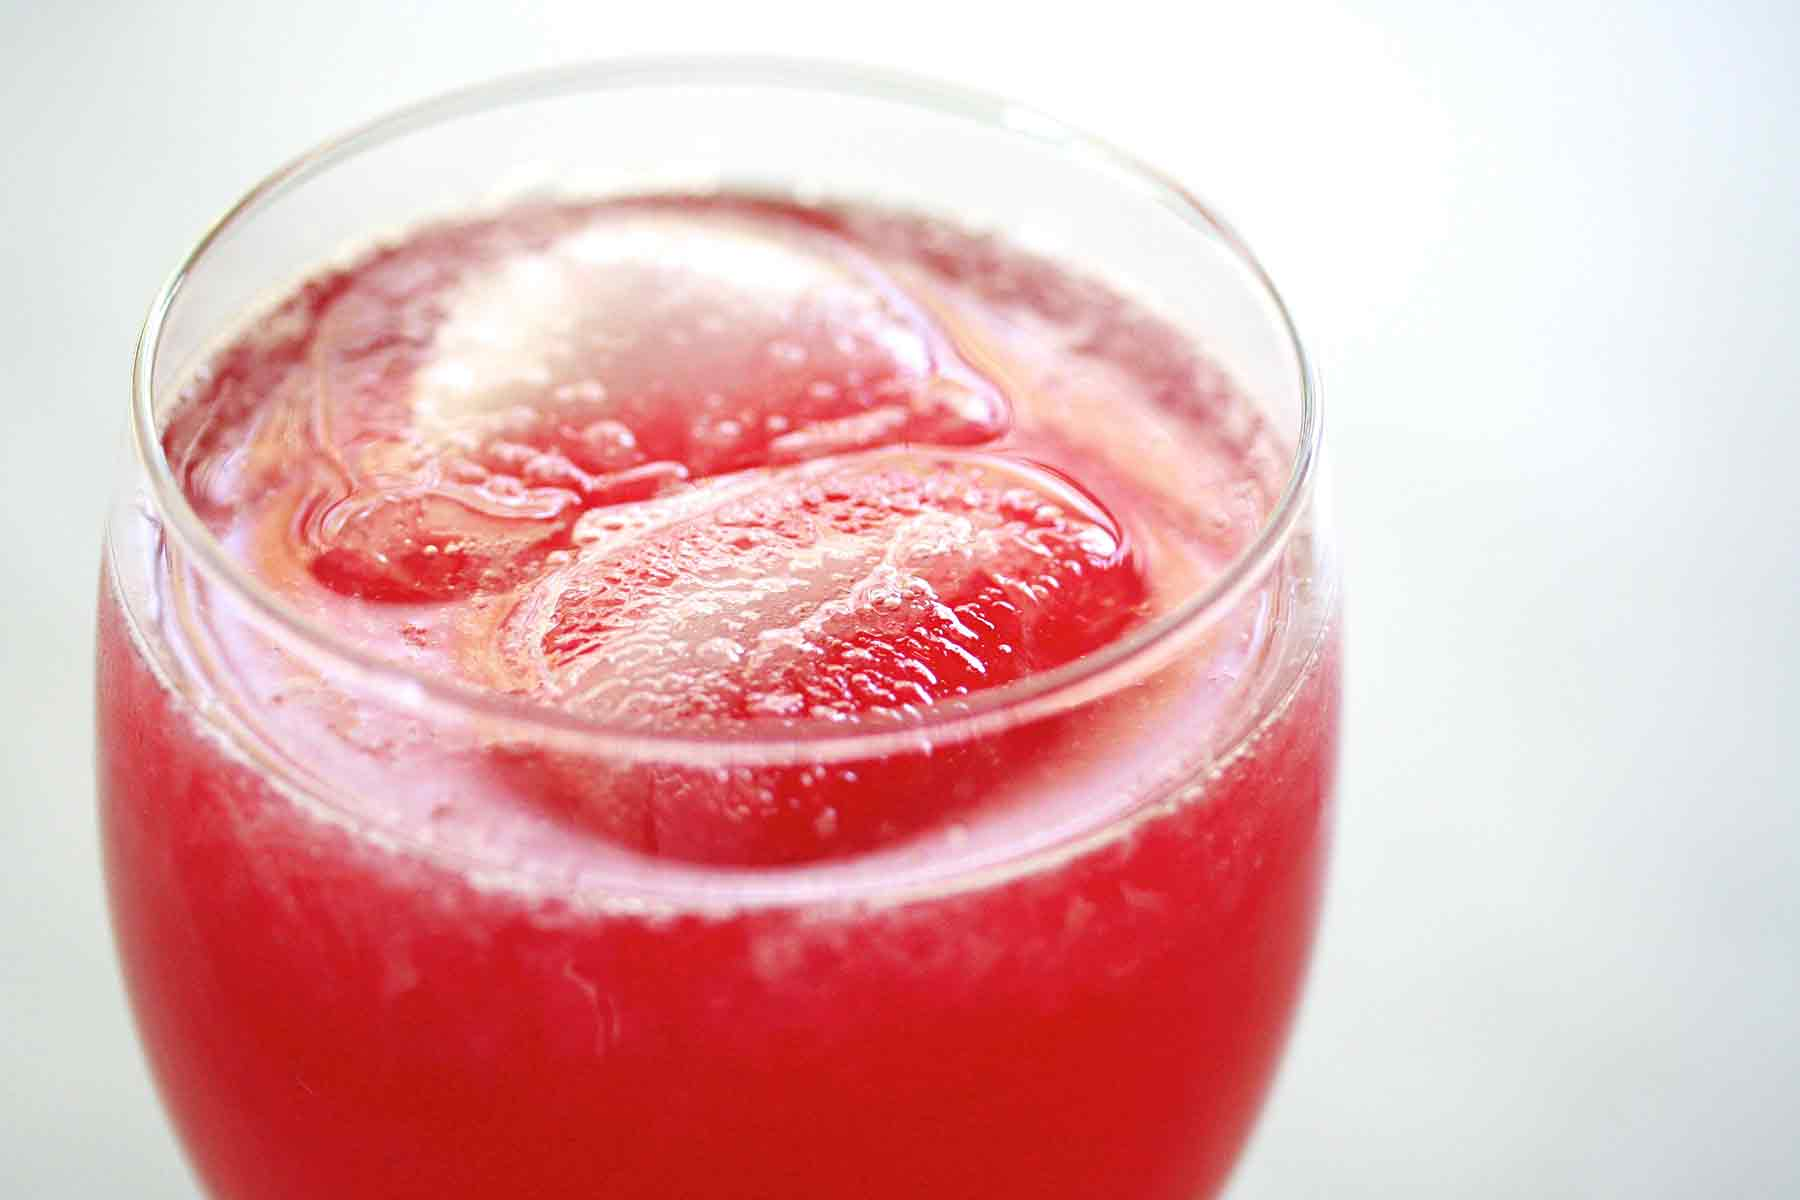 Lemonade Hacks: The Easiest Pink Lemonade by Elise Bauer for Simply Recipes